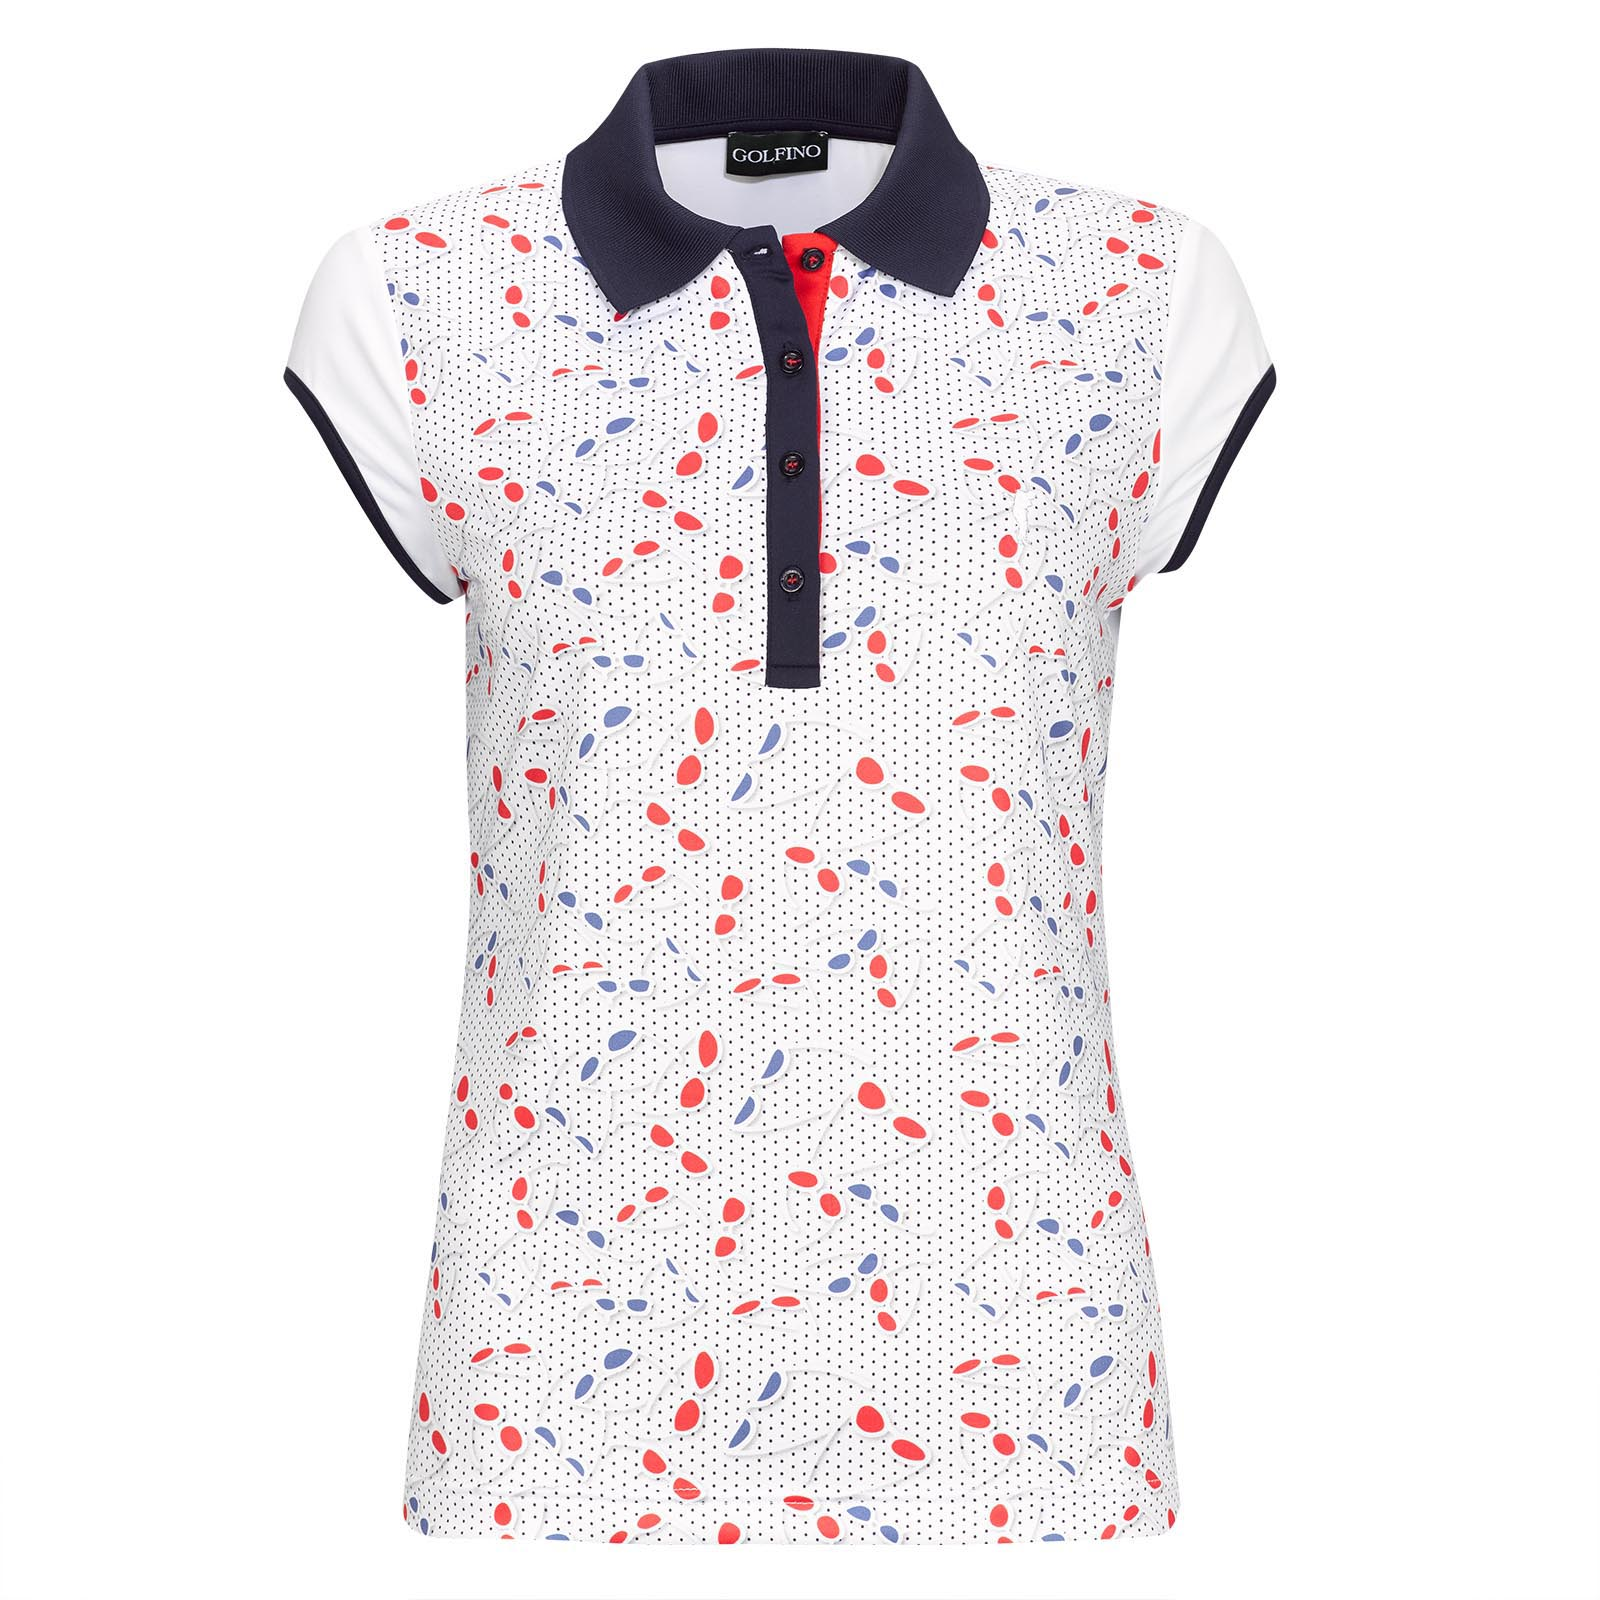 Polo de golf Dry Performance de mujer con mangas extracortas y un moderno estampado